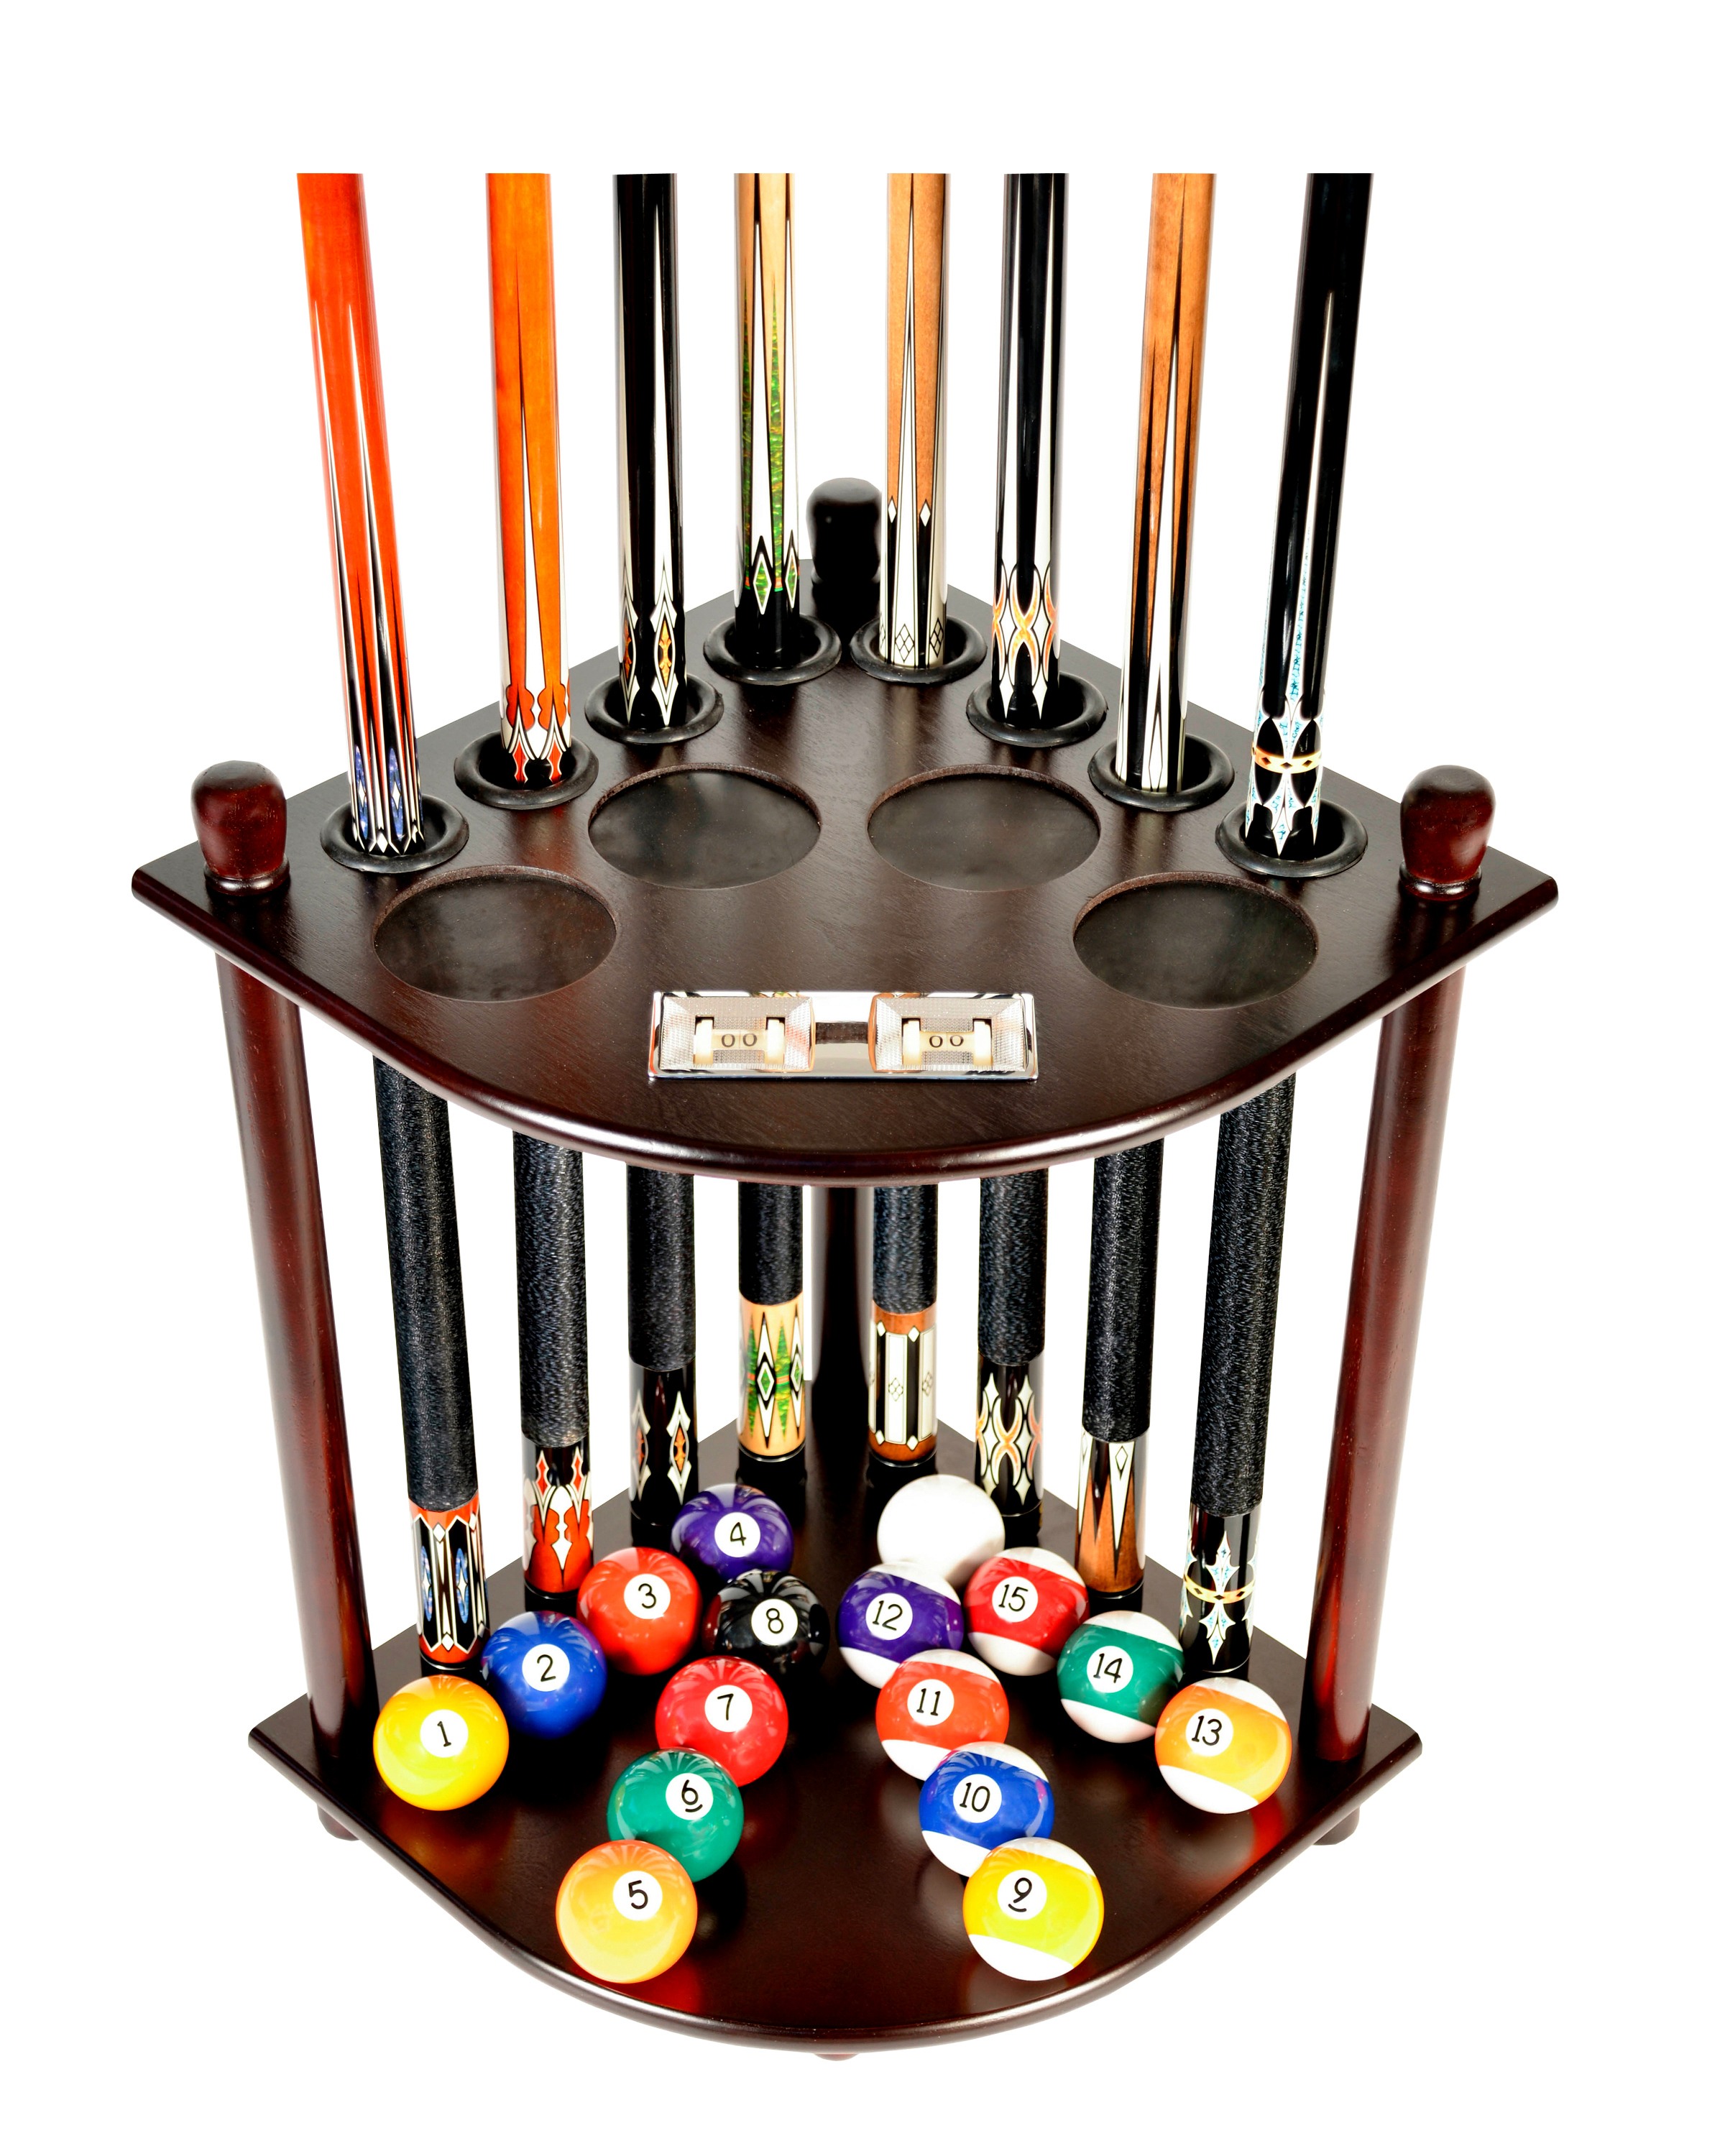 Pool Cue Rack Only 8 Pool Cue Billiard Stick & Ball Floor Rack With Score Counters Mahogany Finish by